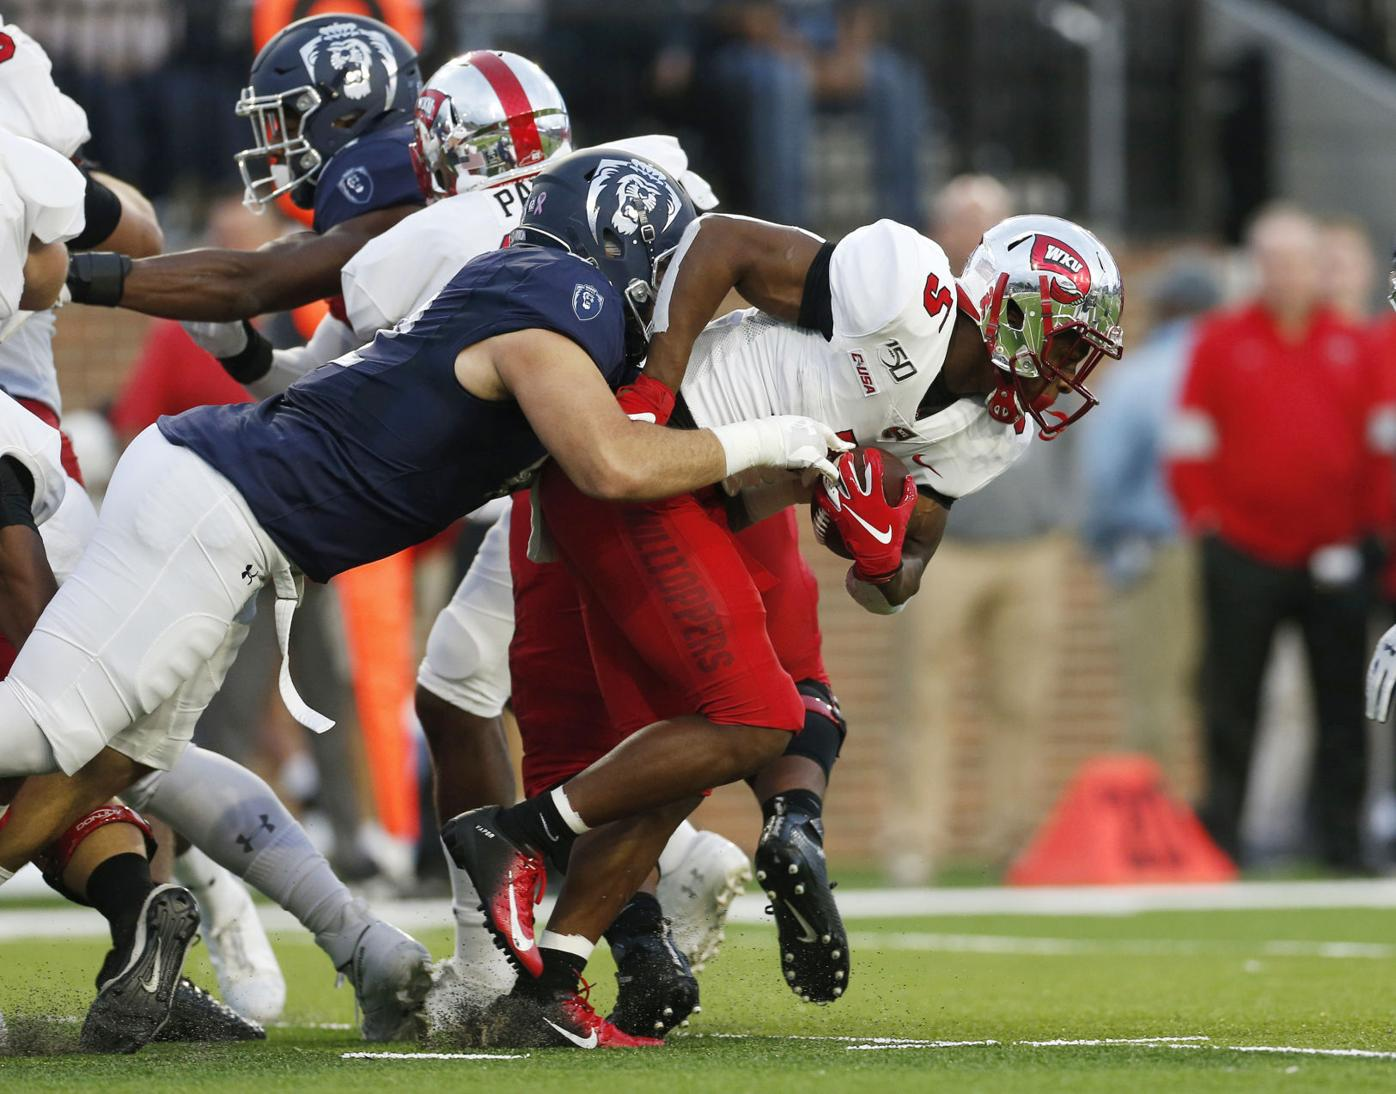 Defense leads charge again for WKU's third conference win ...